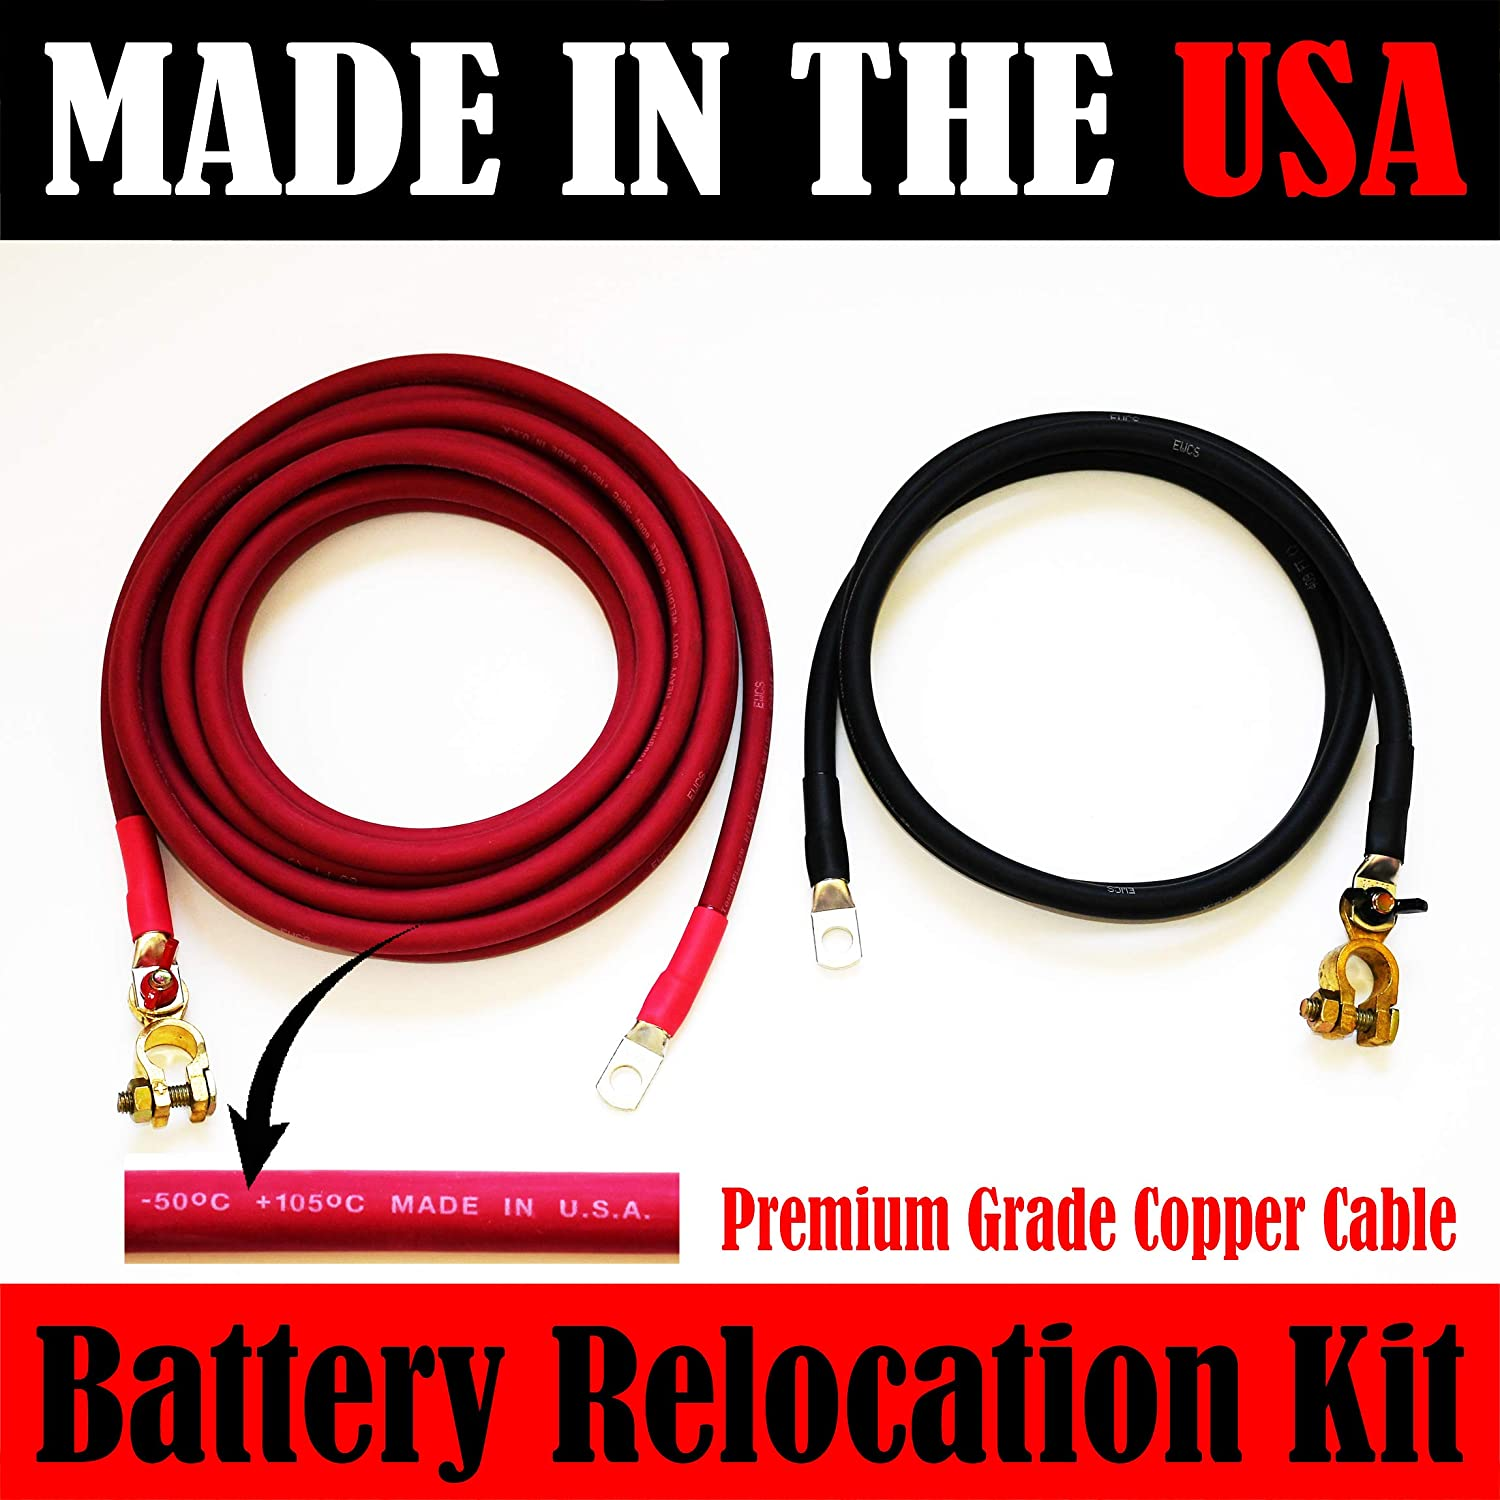 Top Post 20 FT 2 AWG Cable + - // 5 FT Battery Relocation Kit